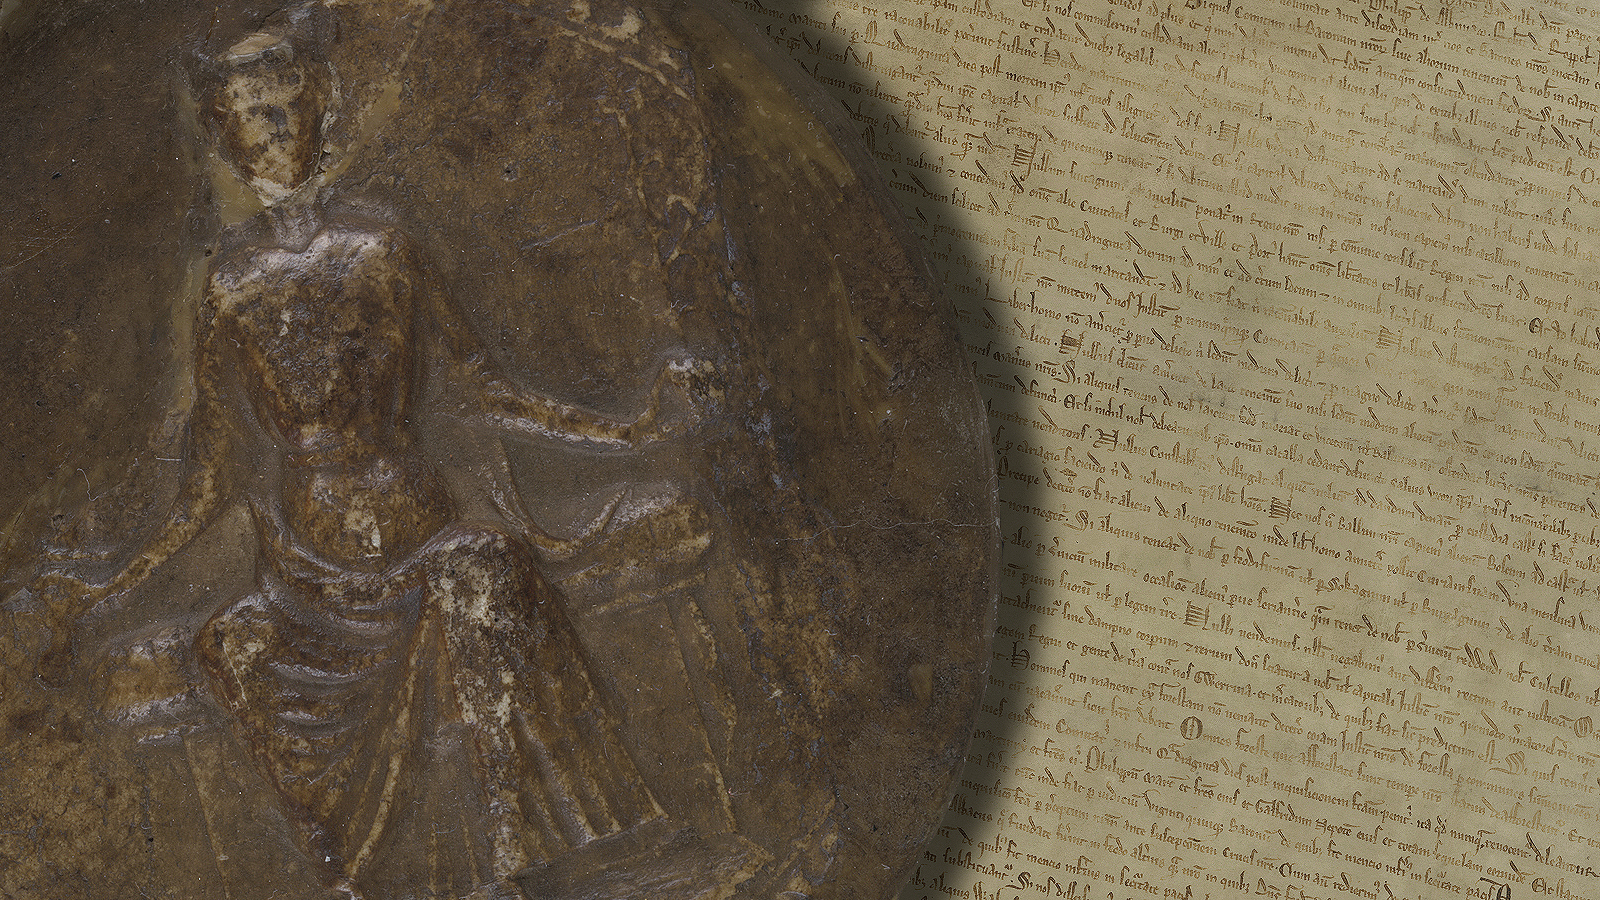 Magna Carta and King John's seal